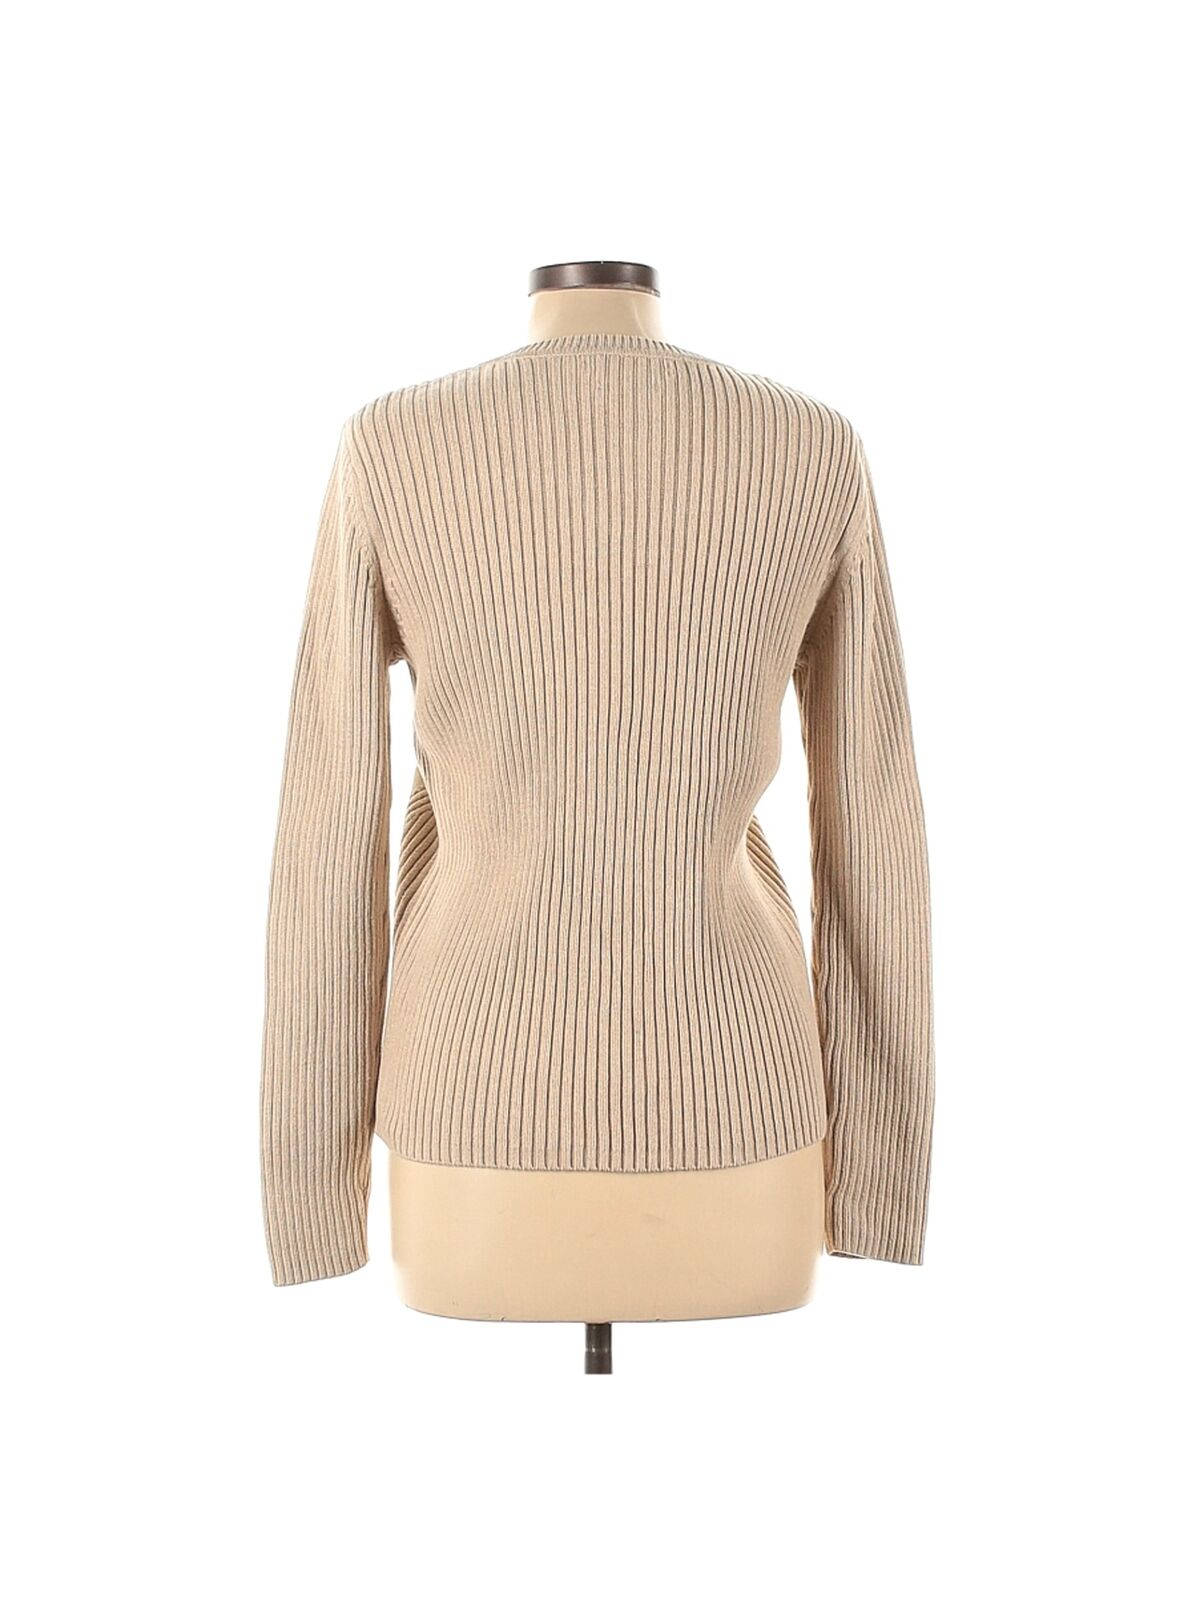 Tommy Hilfiger Women Brown Pullover Sweater L - image 2